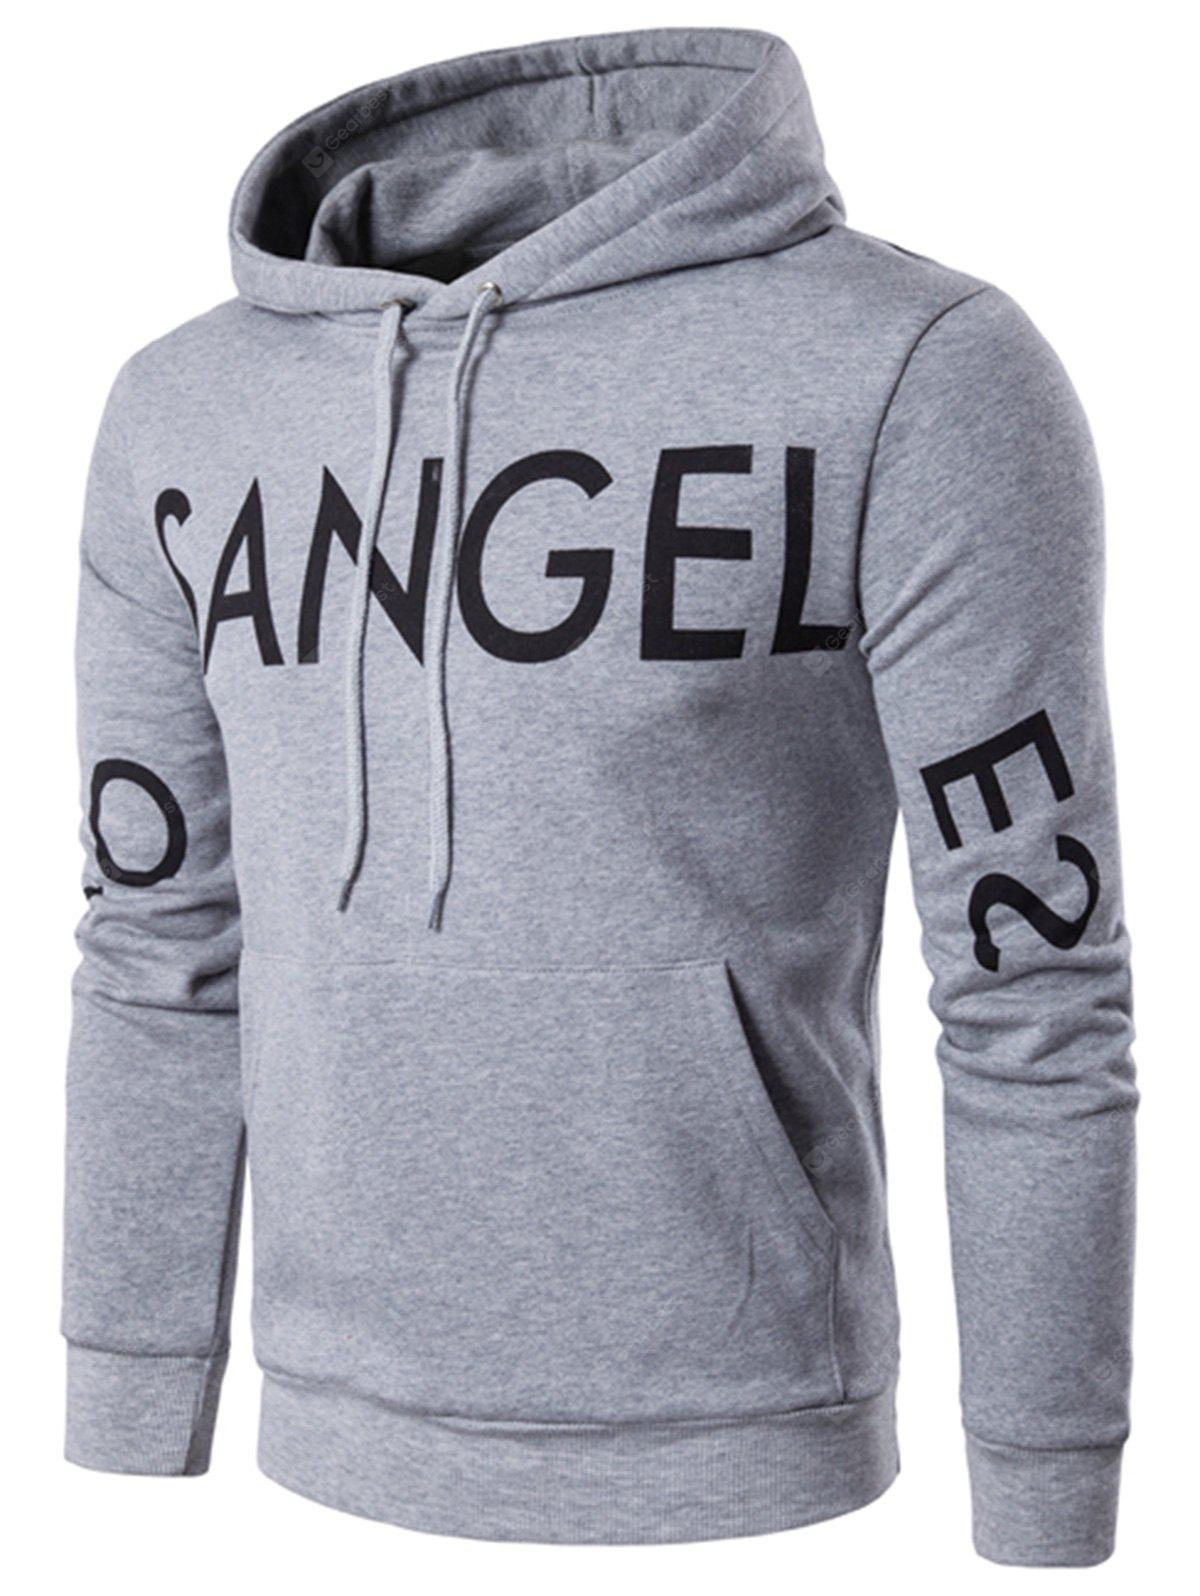 Pocket Drawstring Graphic Print Pullover Hoodie